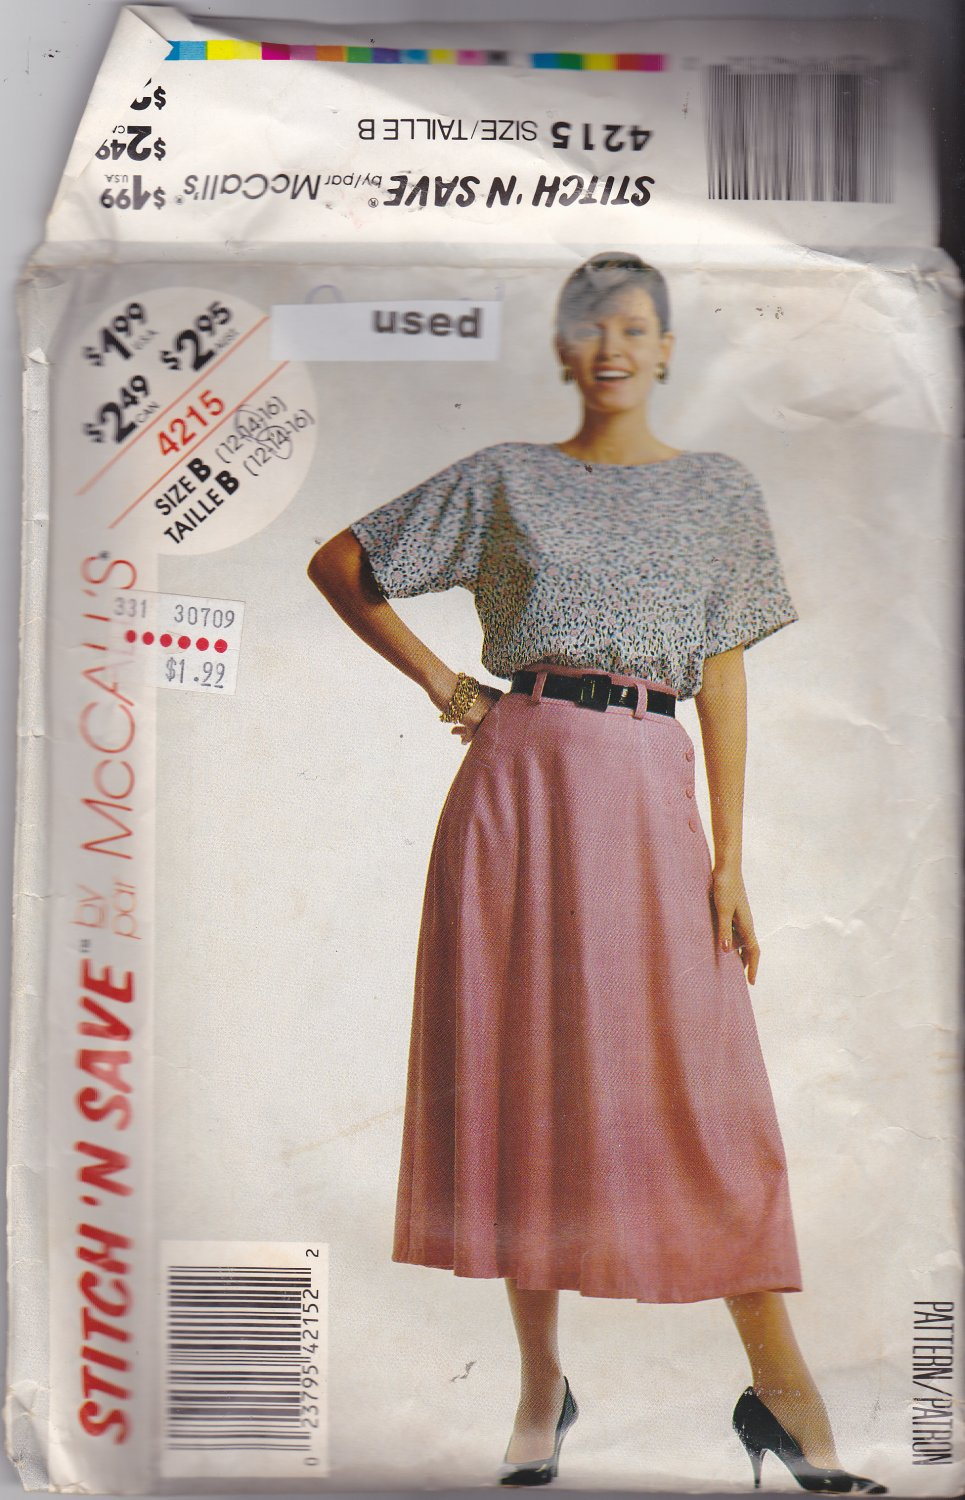 McCall's Stitch N Save 4215 size 14, may be missing pieces, 50 cents plus shipping